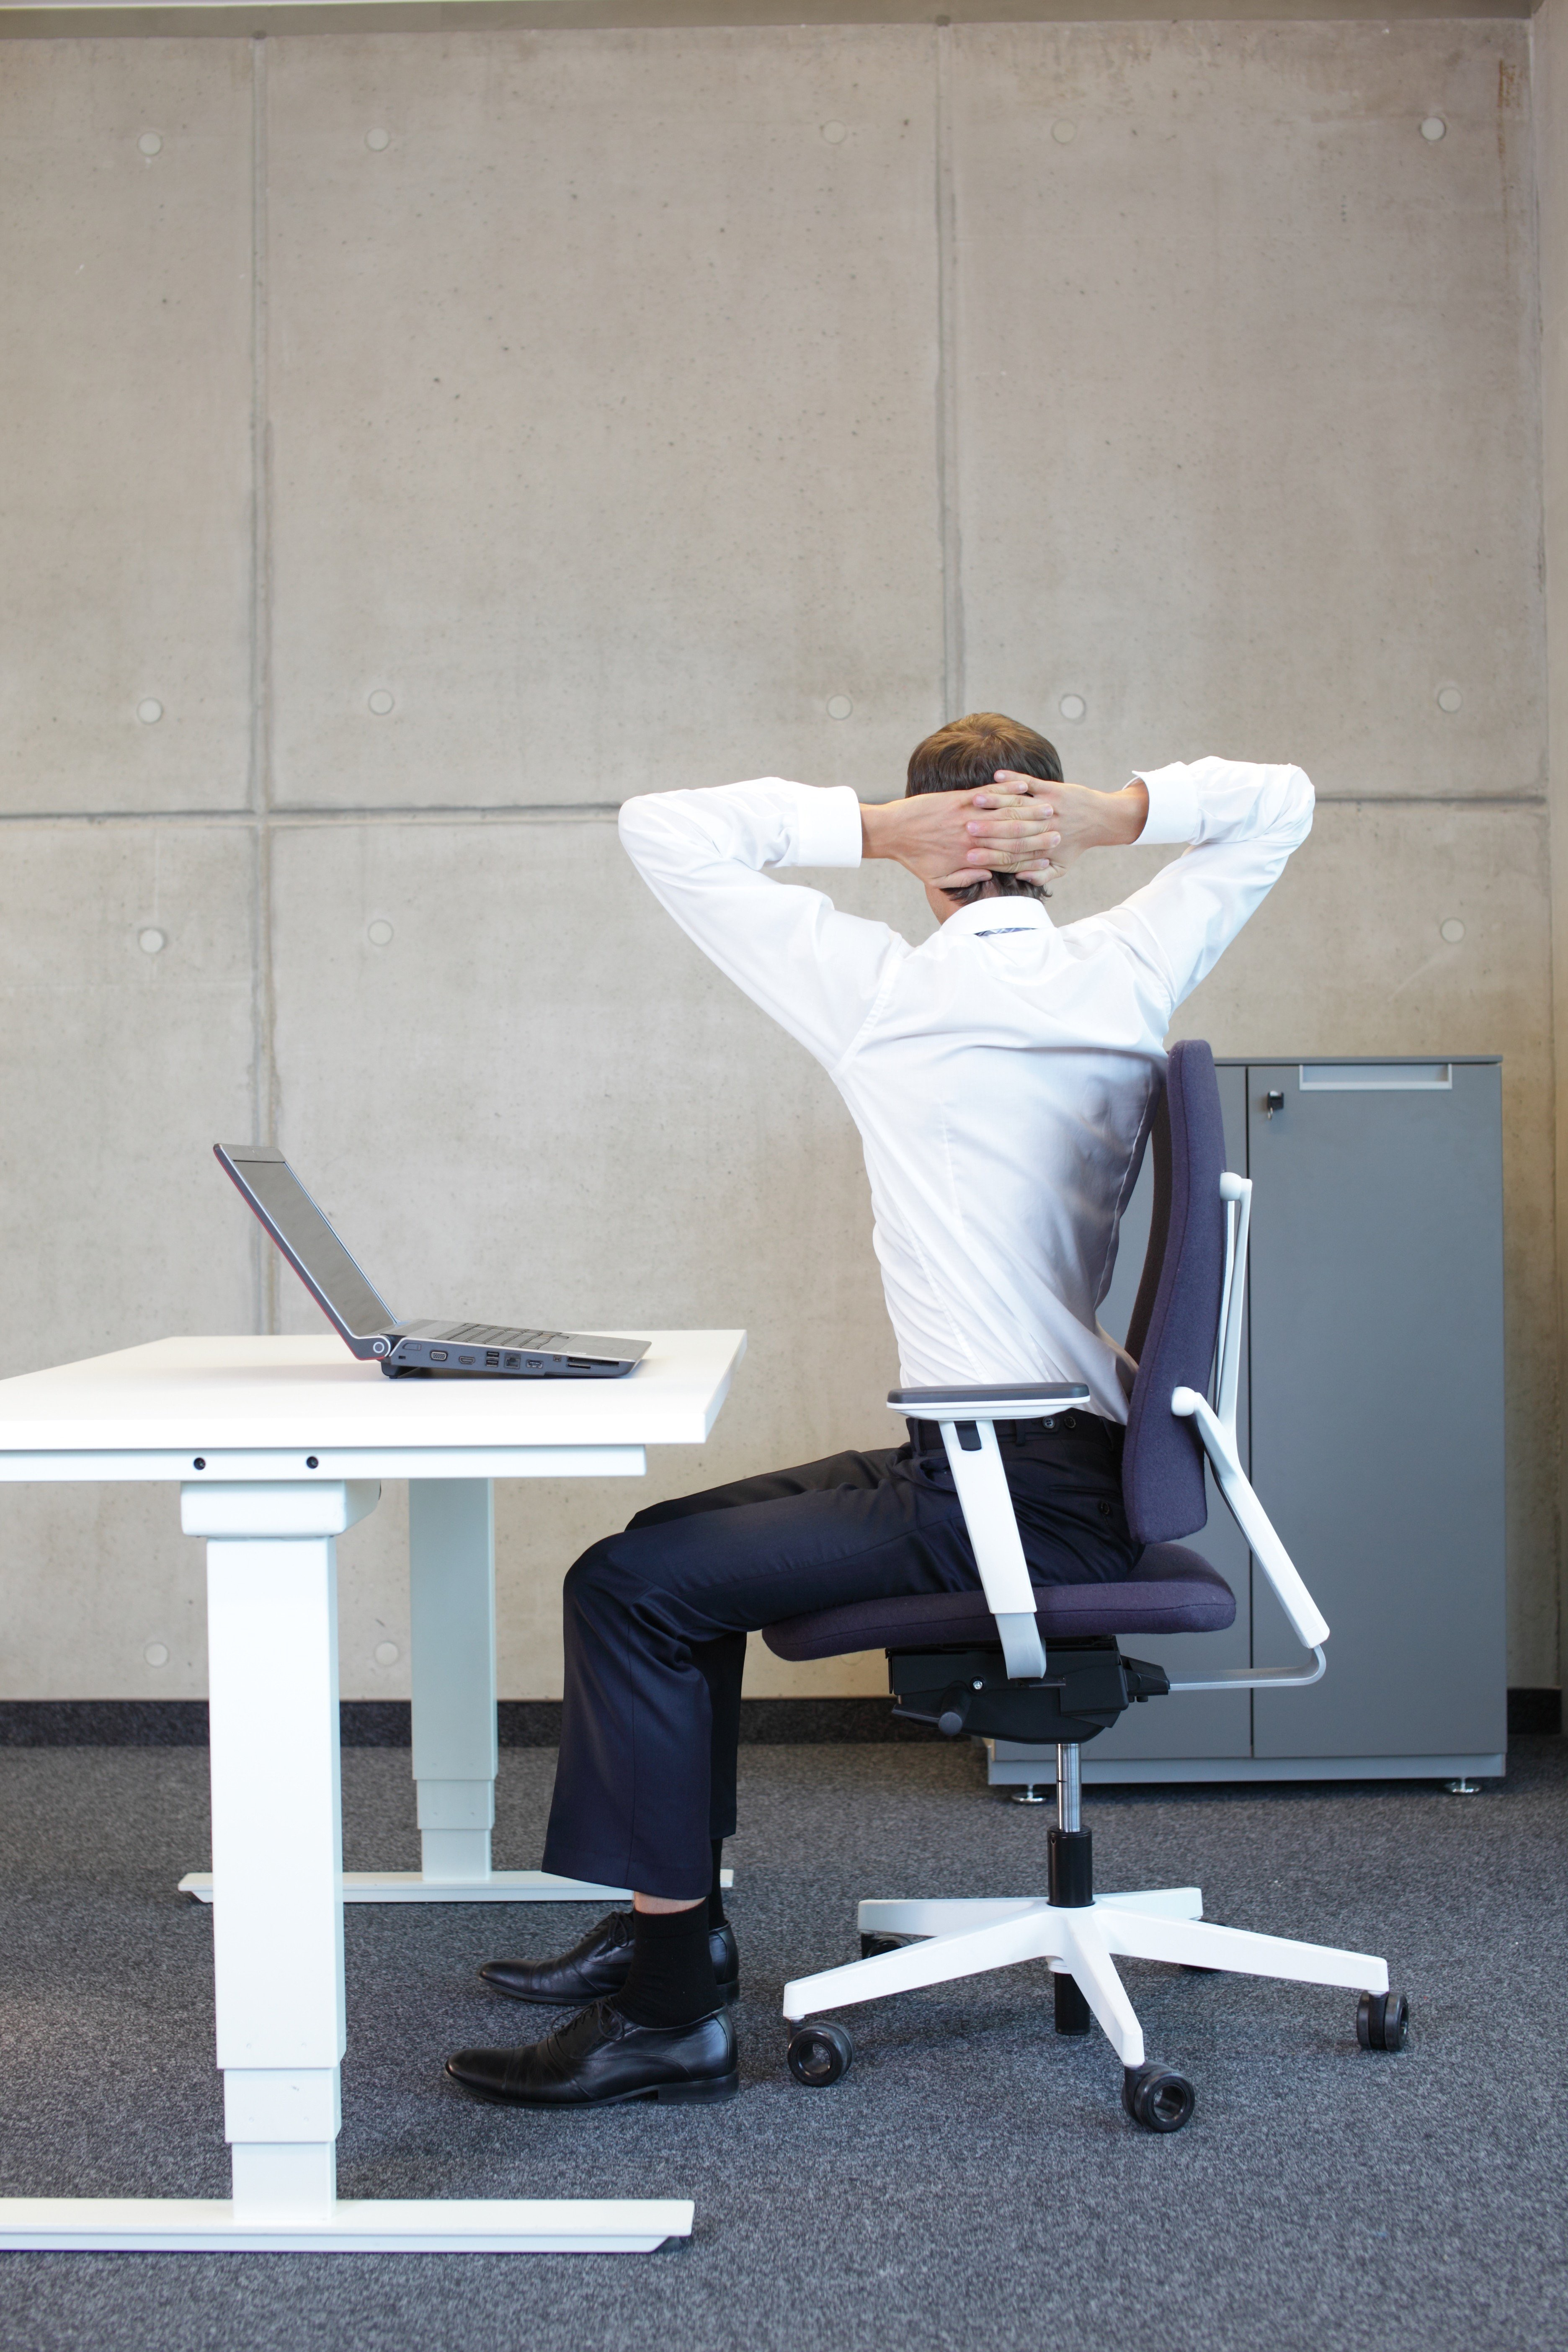 Man with Lower Back Pain from his Desk Chair